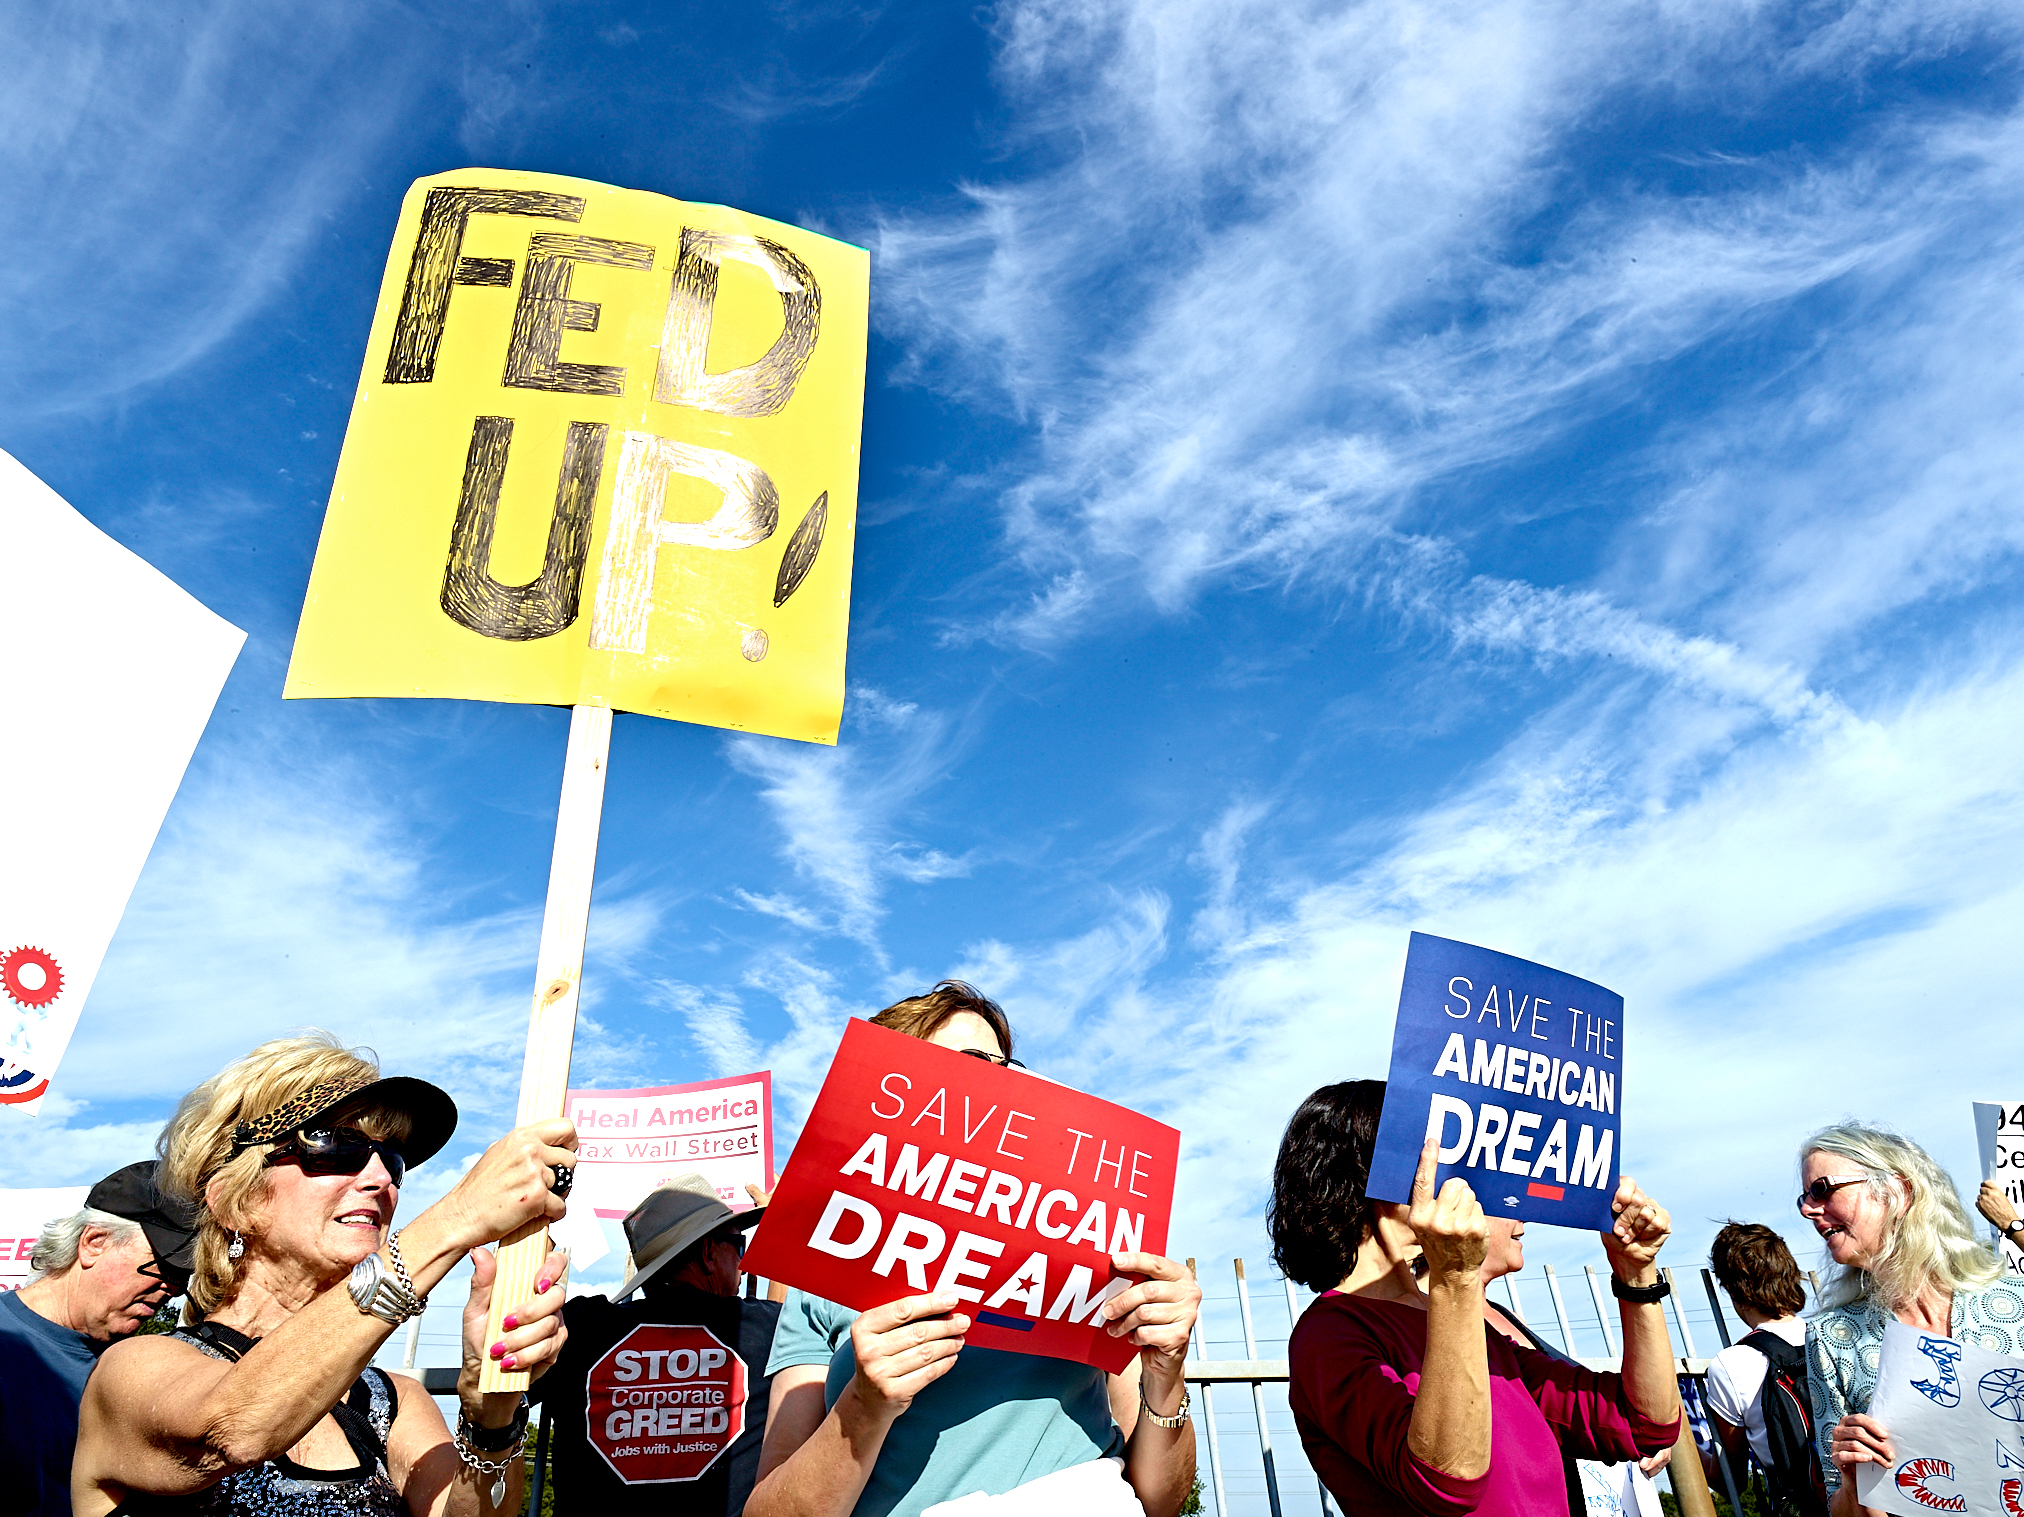 Fed Up by Peter Adams.